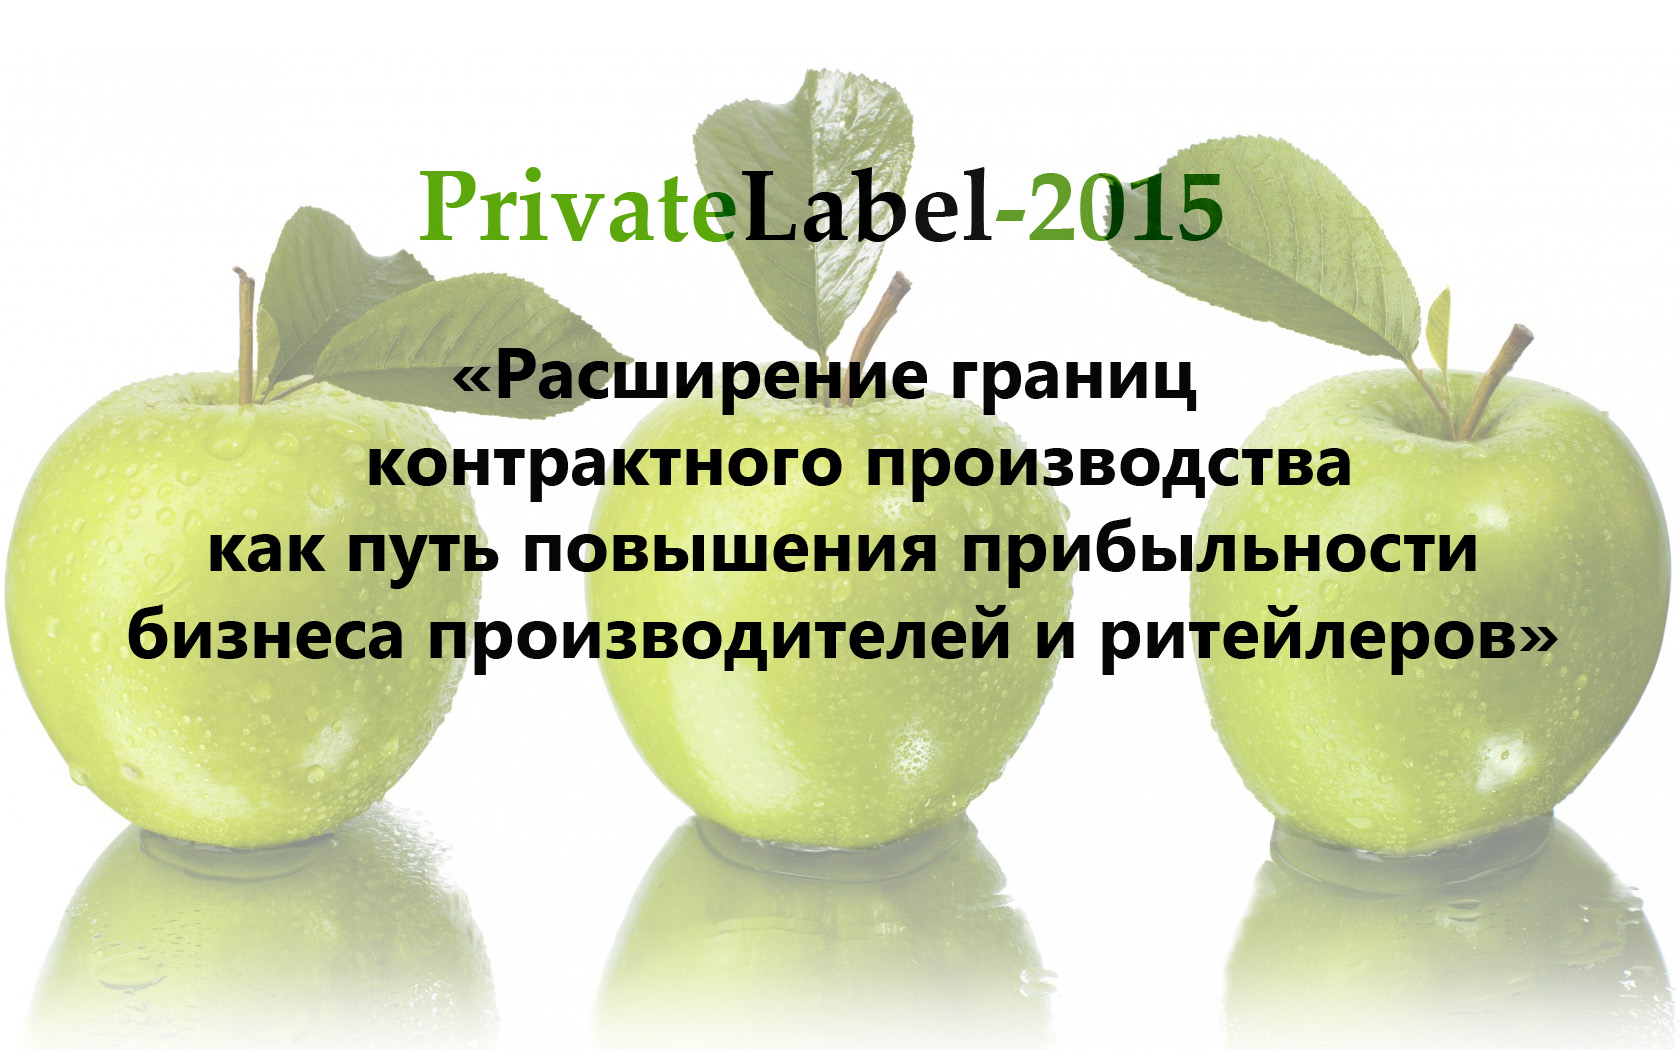 PrivateLabel - 2015:  Расширение границ контрактного производства